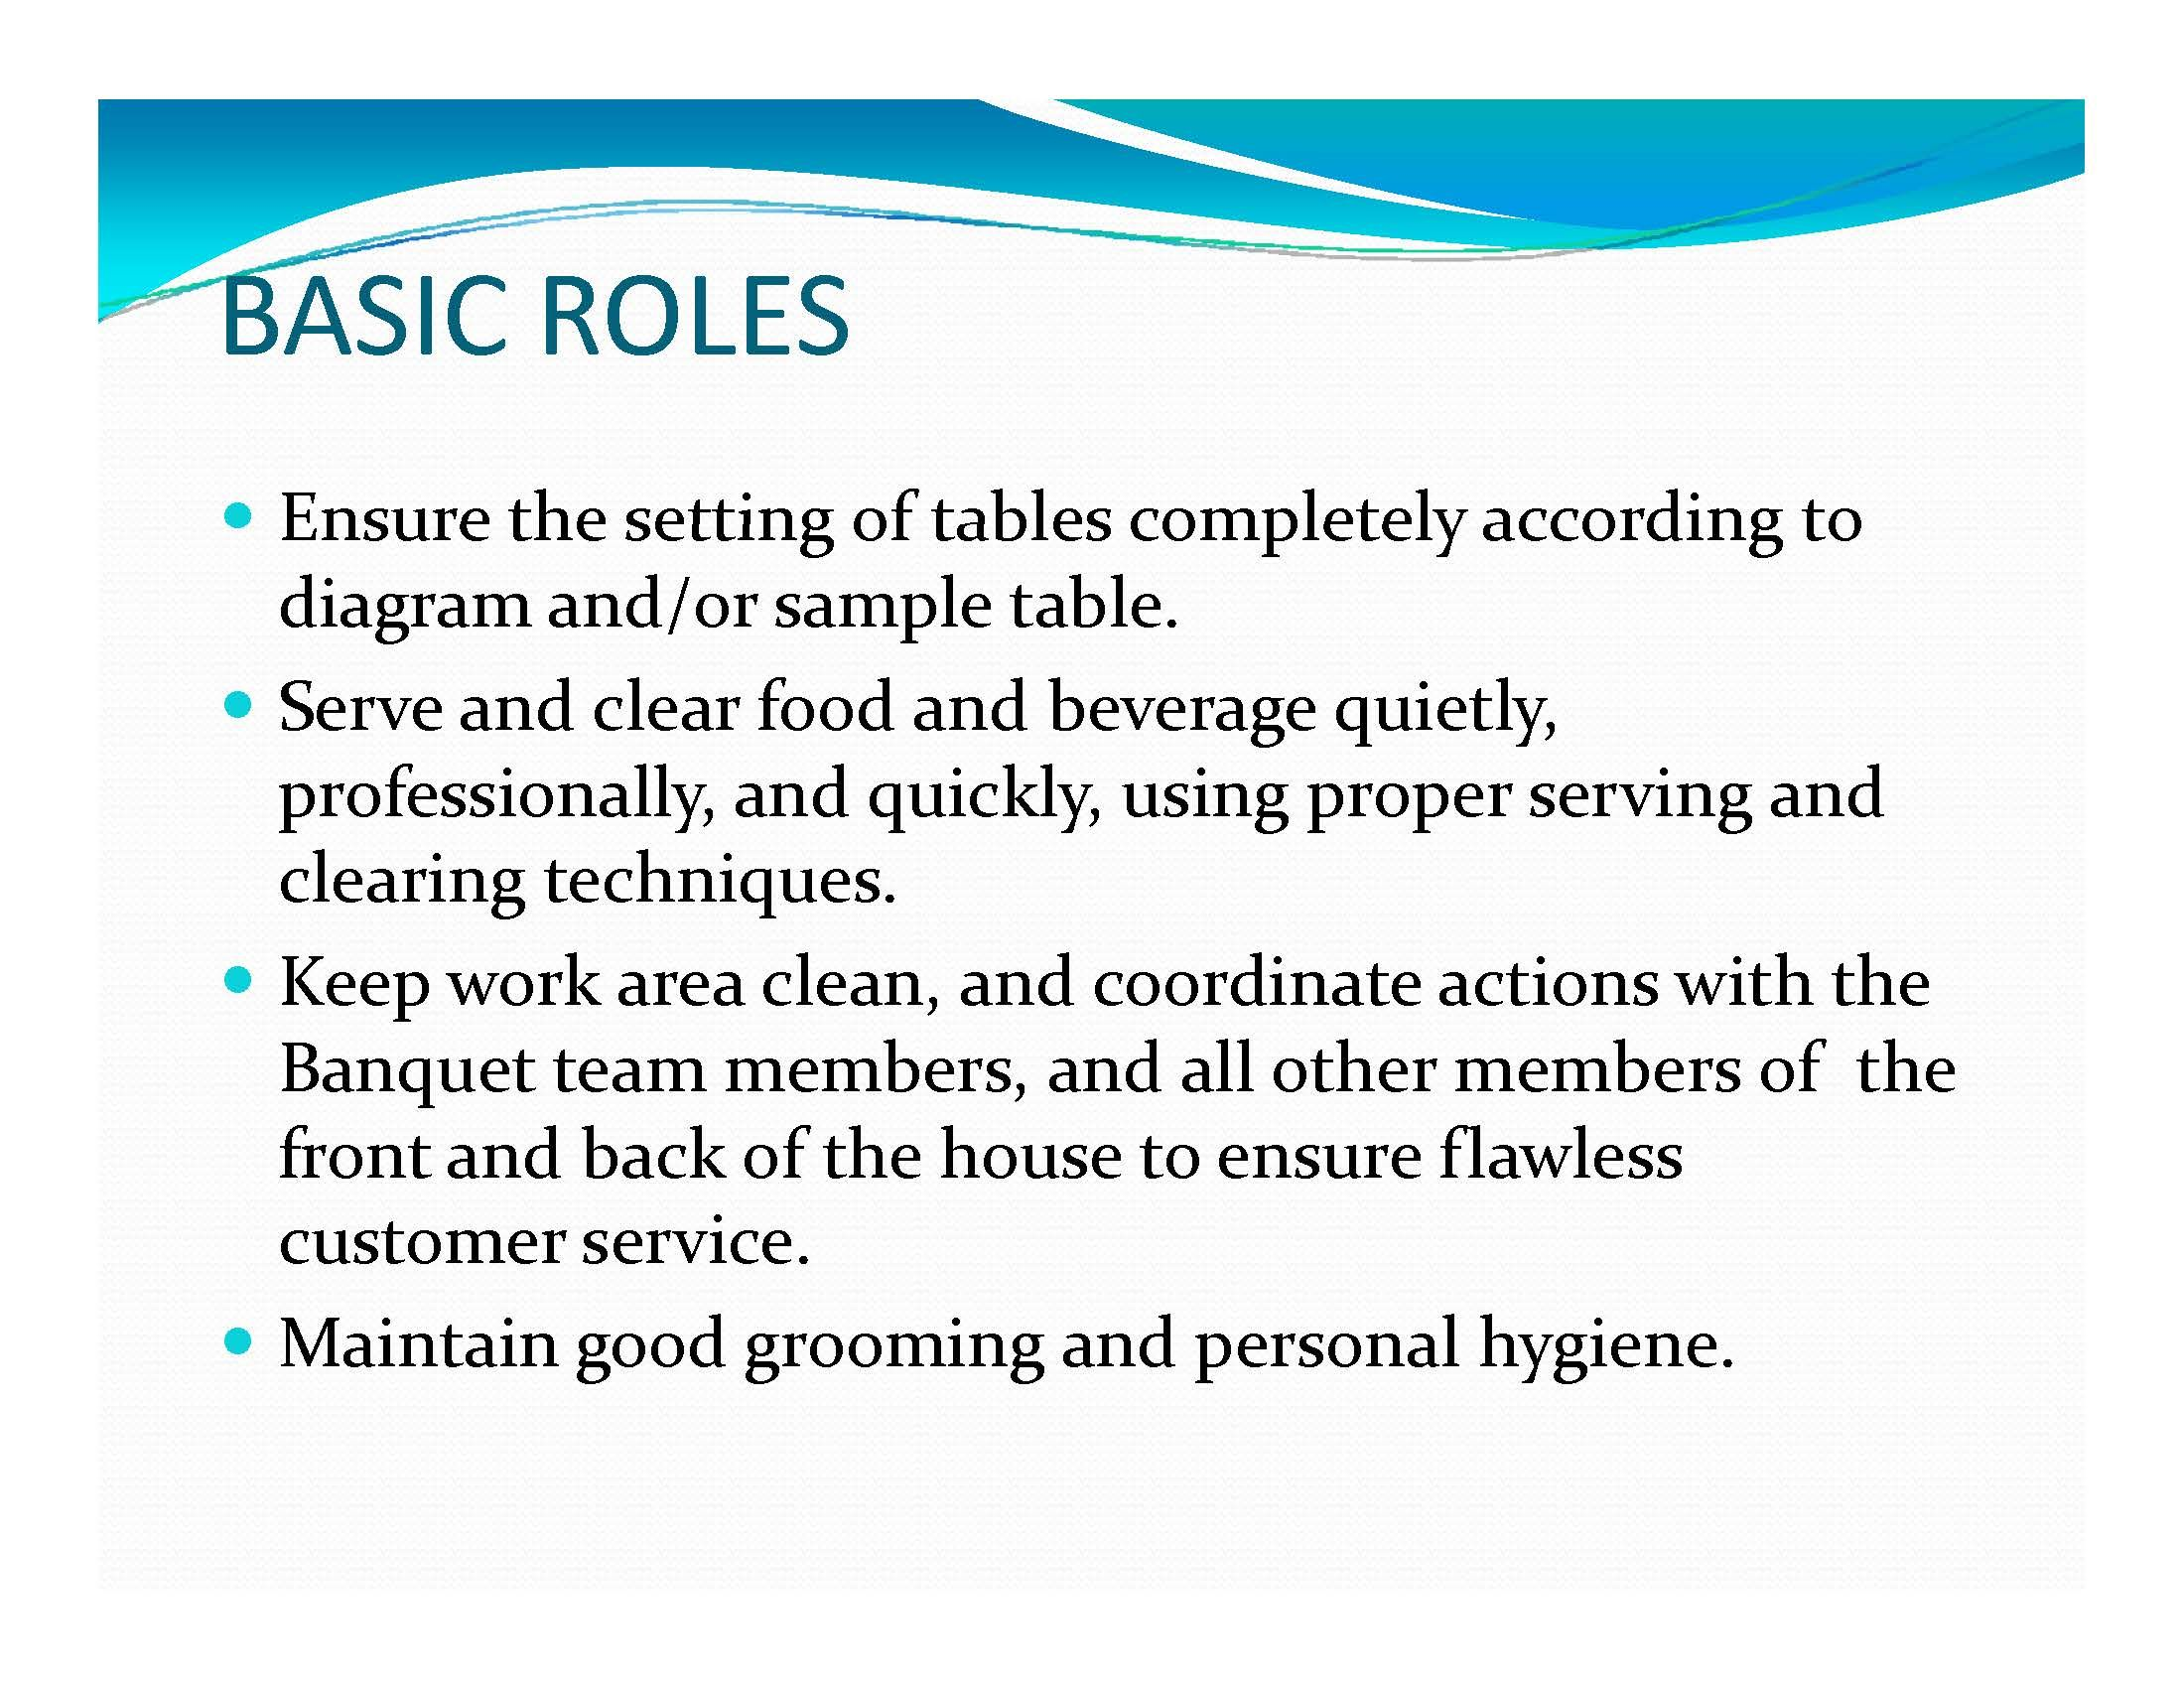 page banquet server training banquet catering menus setups page 2 banquet server training